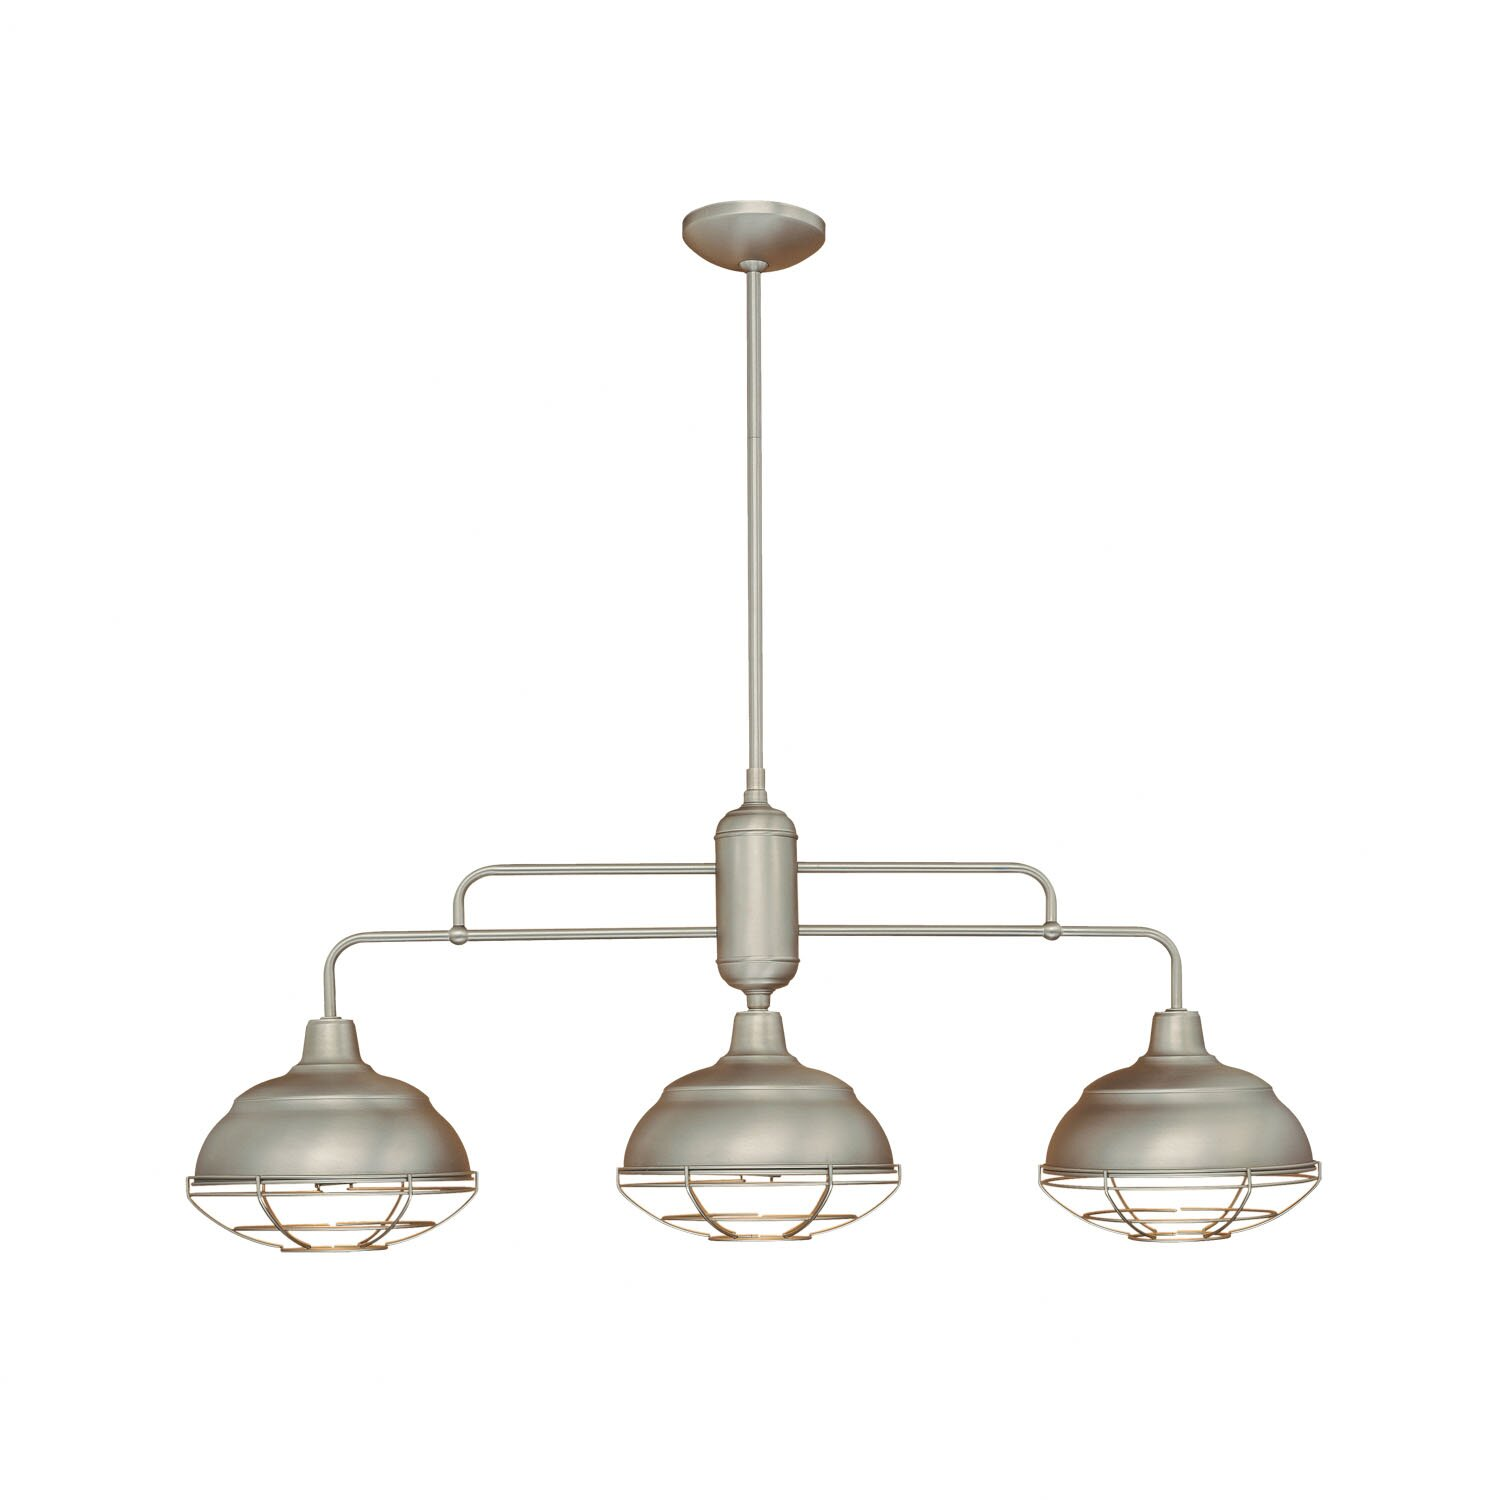 Millennium Lighting Neo Industrial 3 Light Kitchen Island Pendant Reviews Wayfair